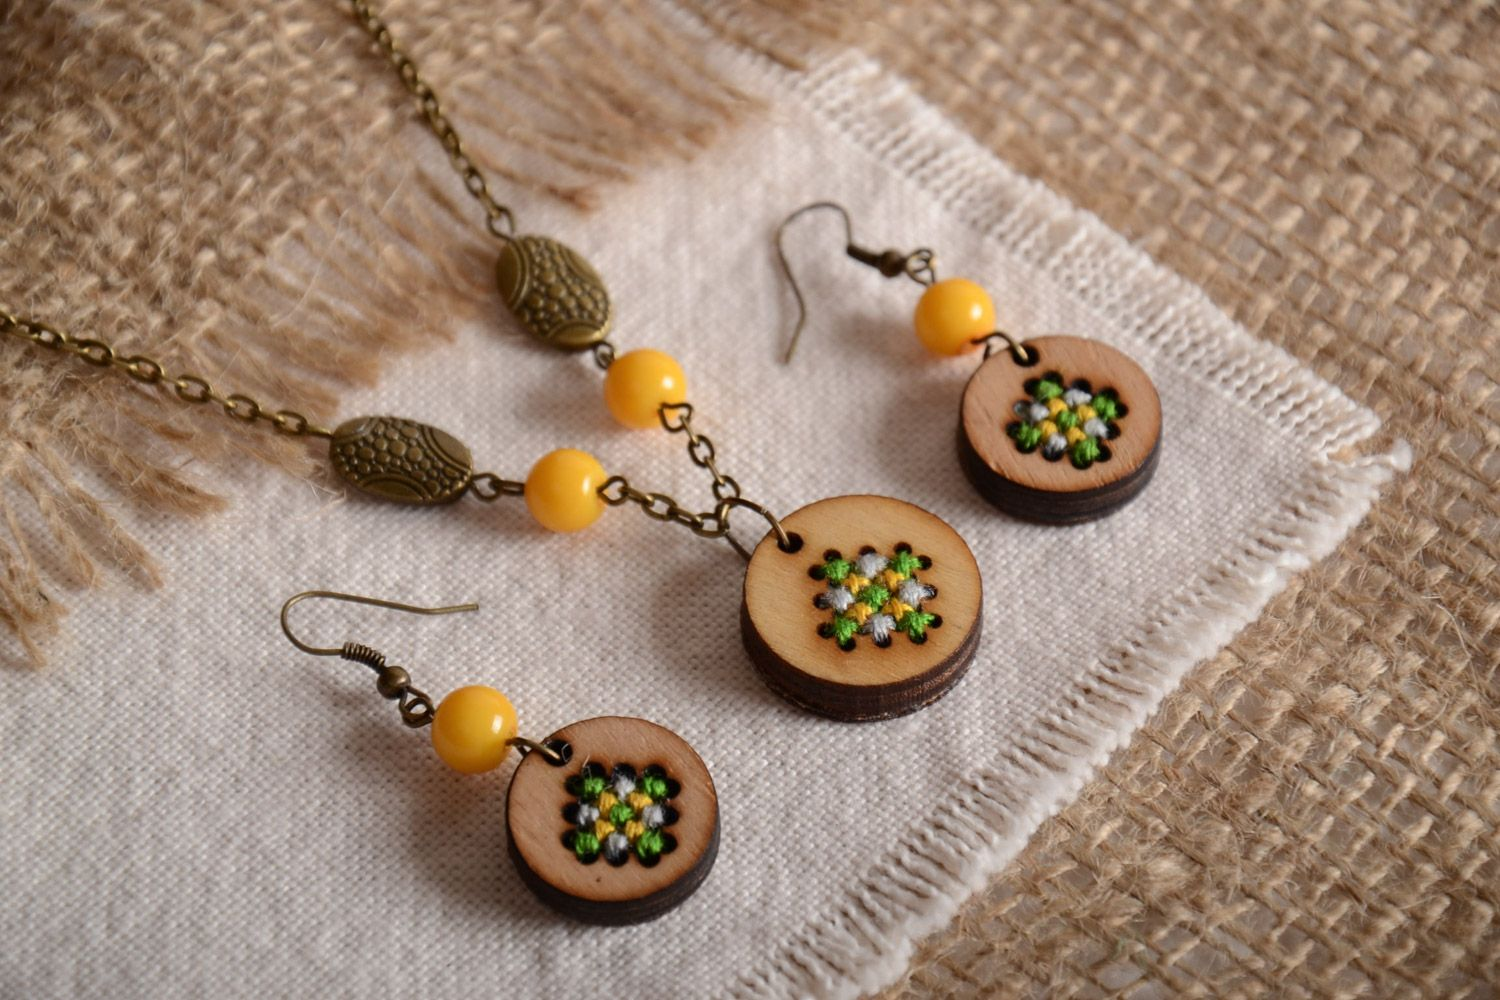 Handmade plywood jewellery round earrings and pendant with embroidery in ethnic style photo 1